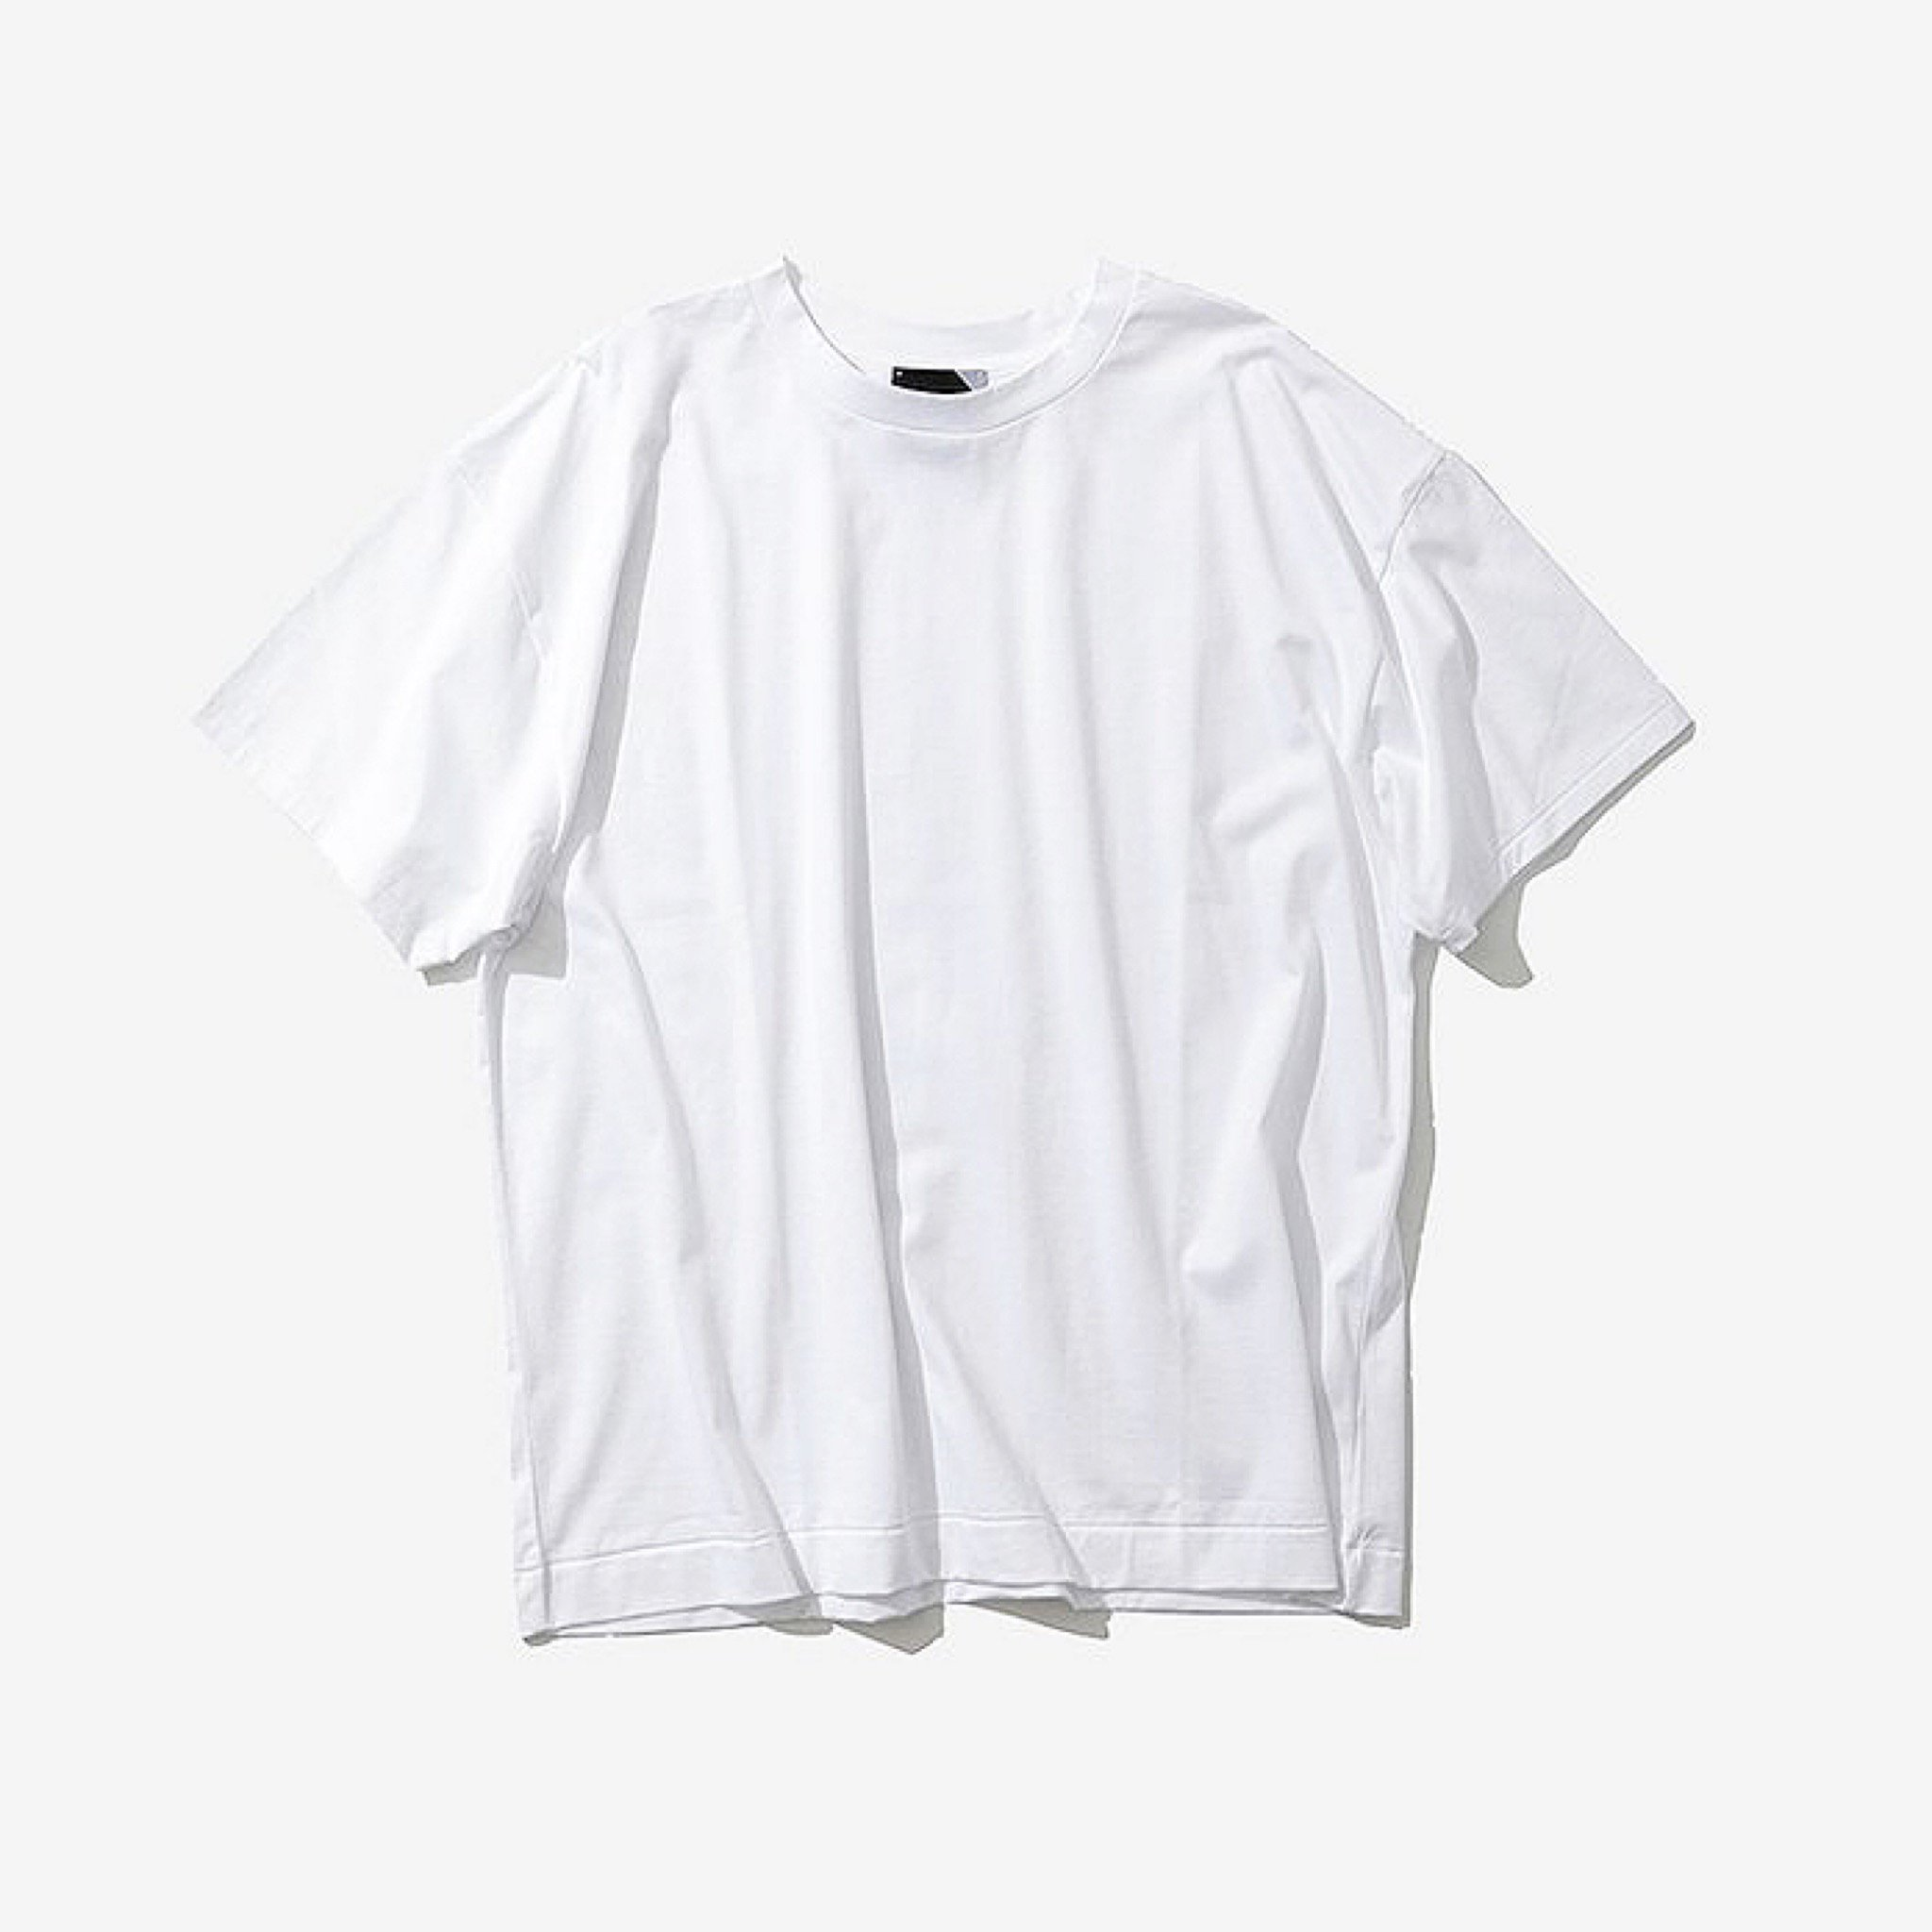 ATON-SUVIN 60/2 OVERSIZED T-SHIRTS 20ss WHITE